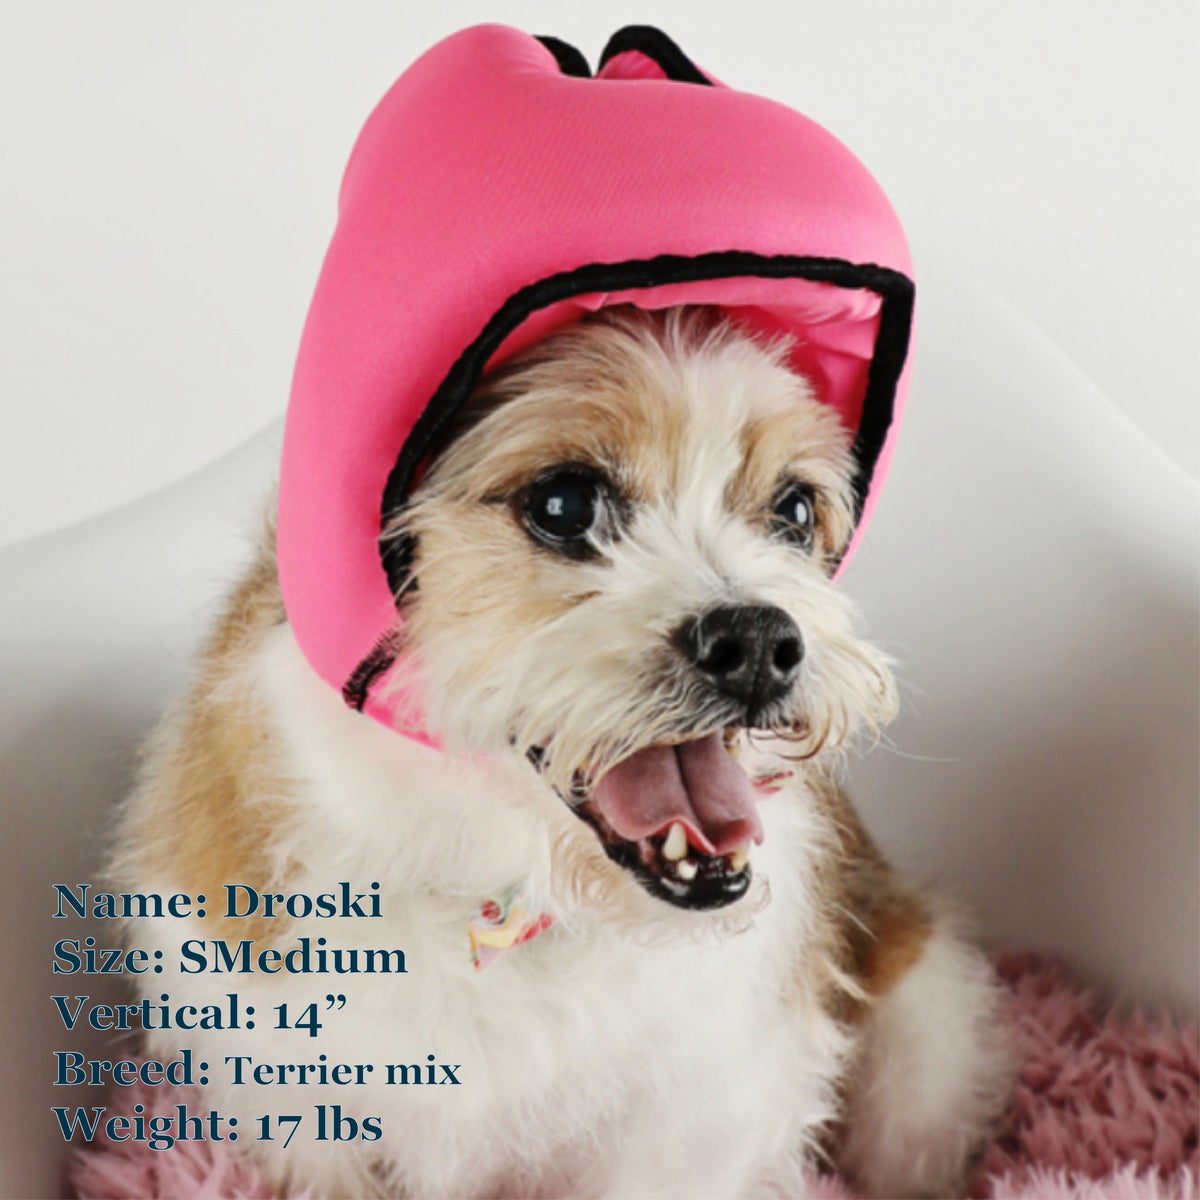 Droski is a Terrier Mix in a SMedium Pink PAWNIX Noise Cancelling Headset for dogs